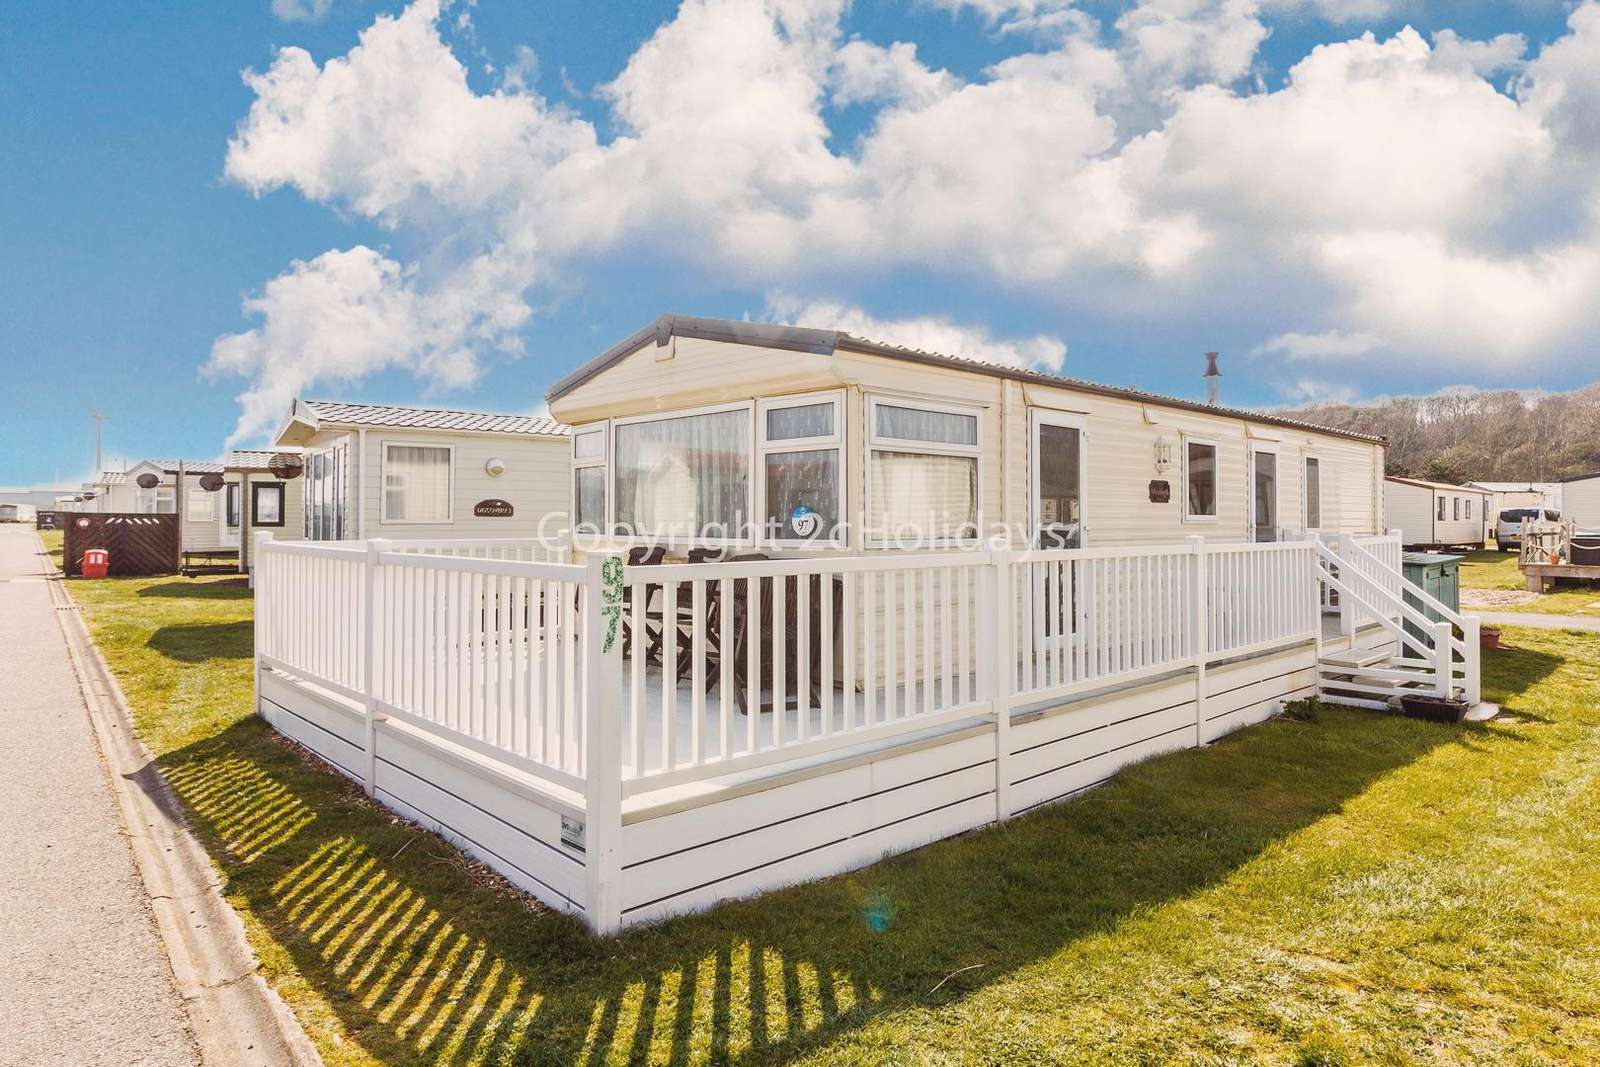 Perfect for seaside break with the beach only a 5 minute walk away!